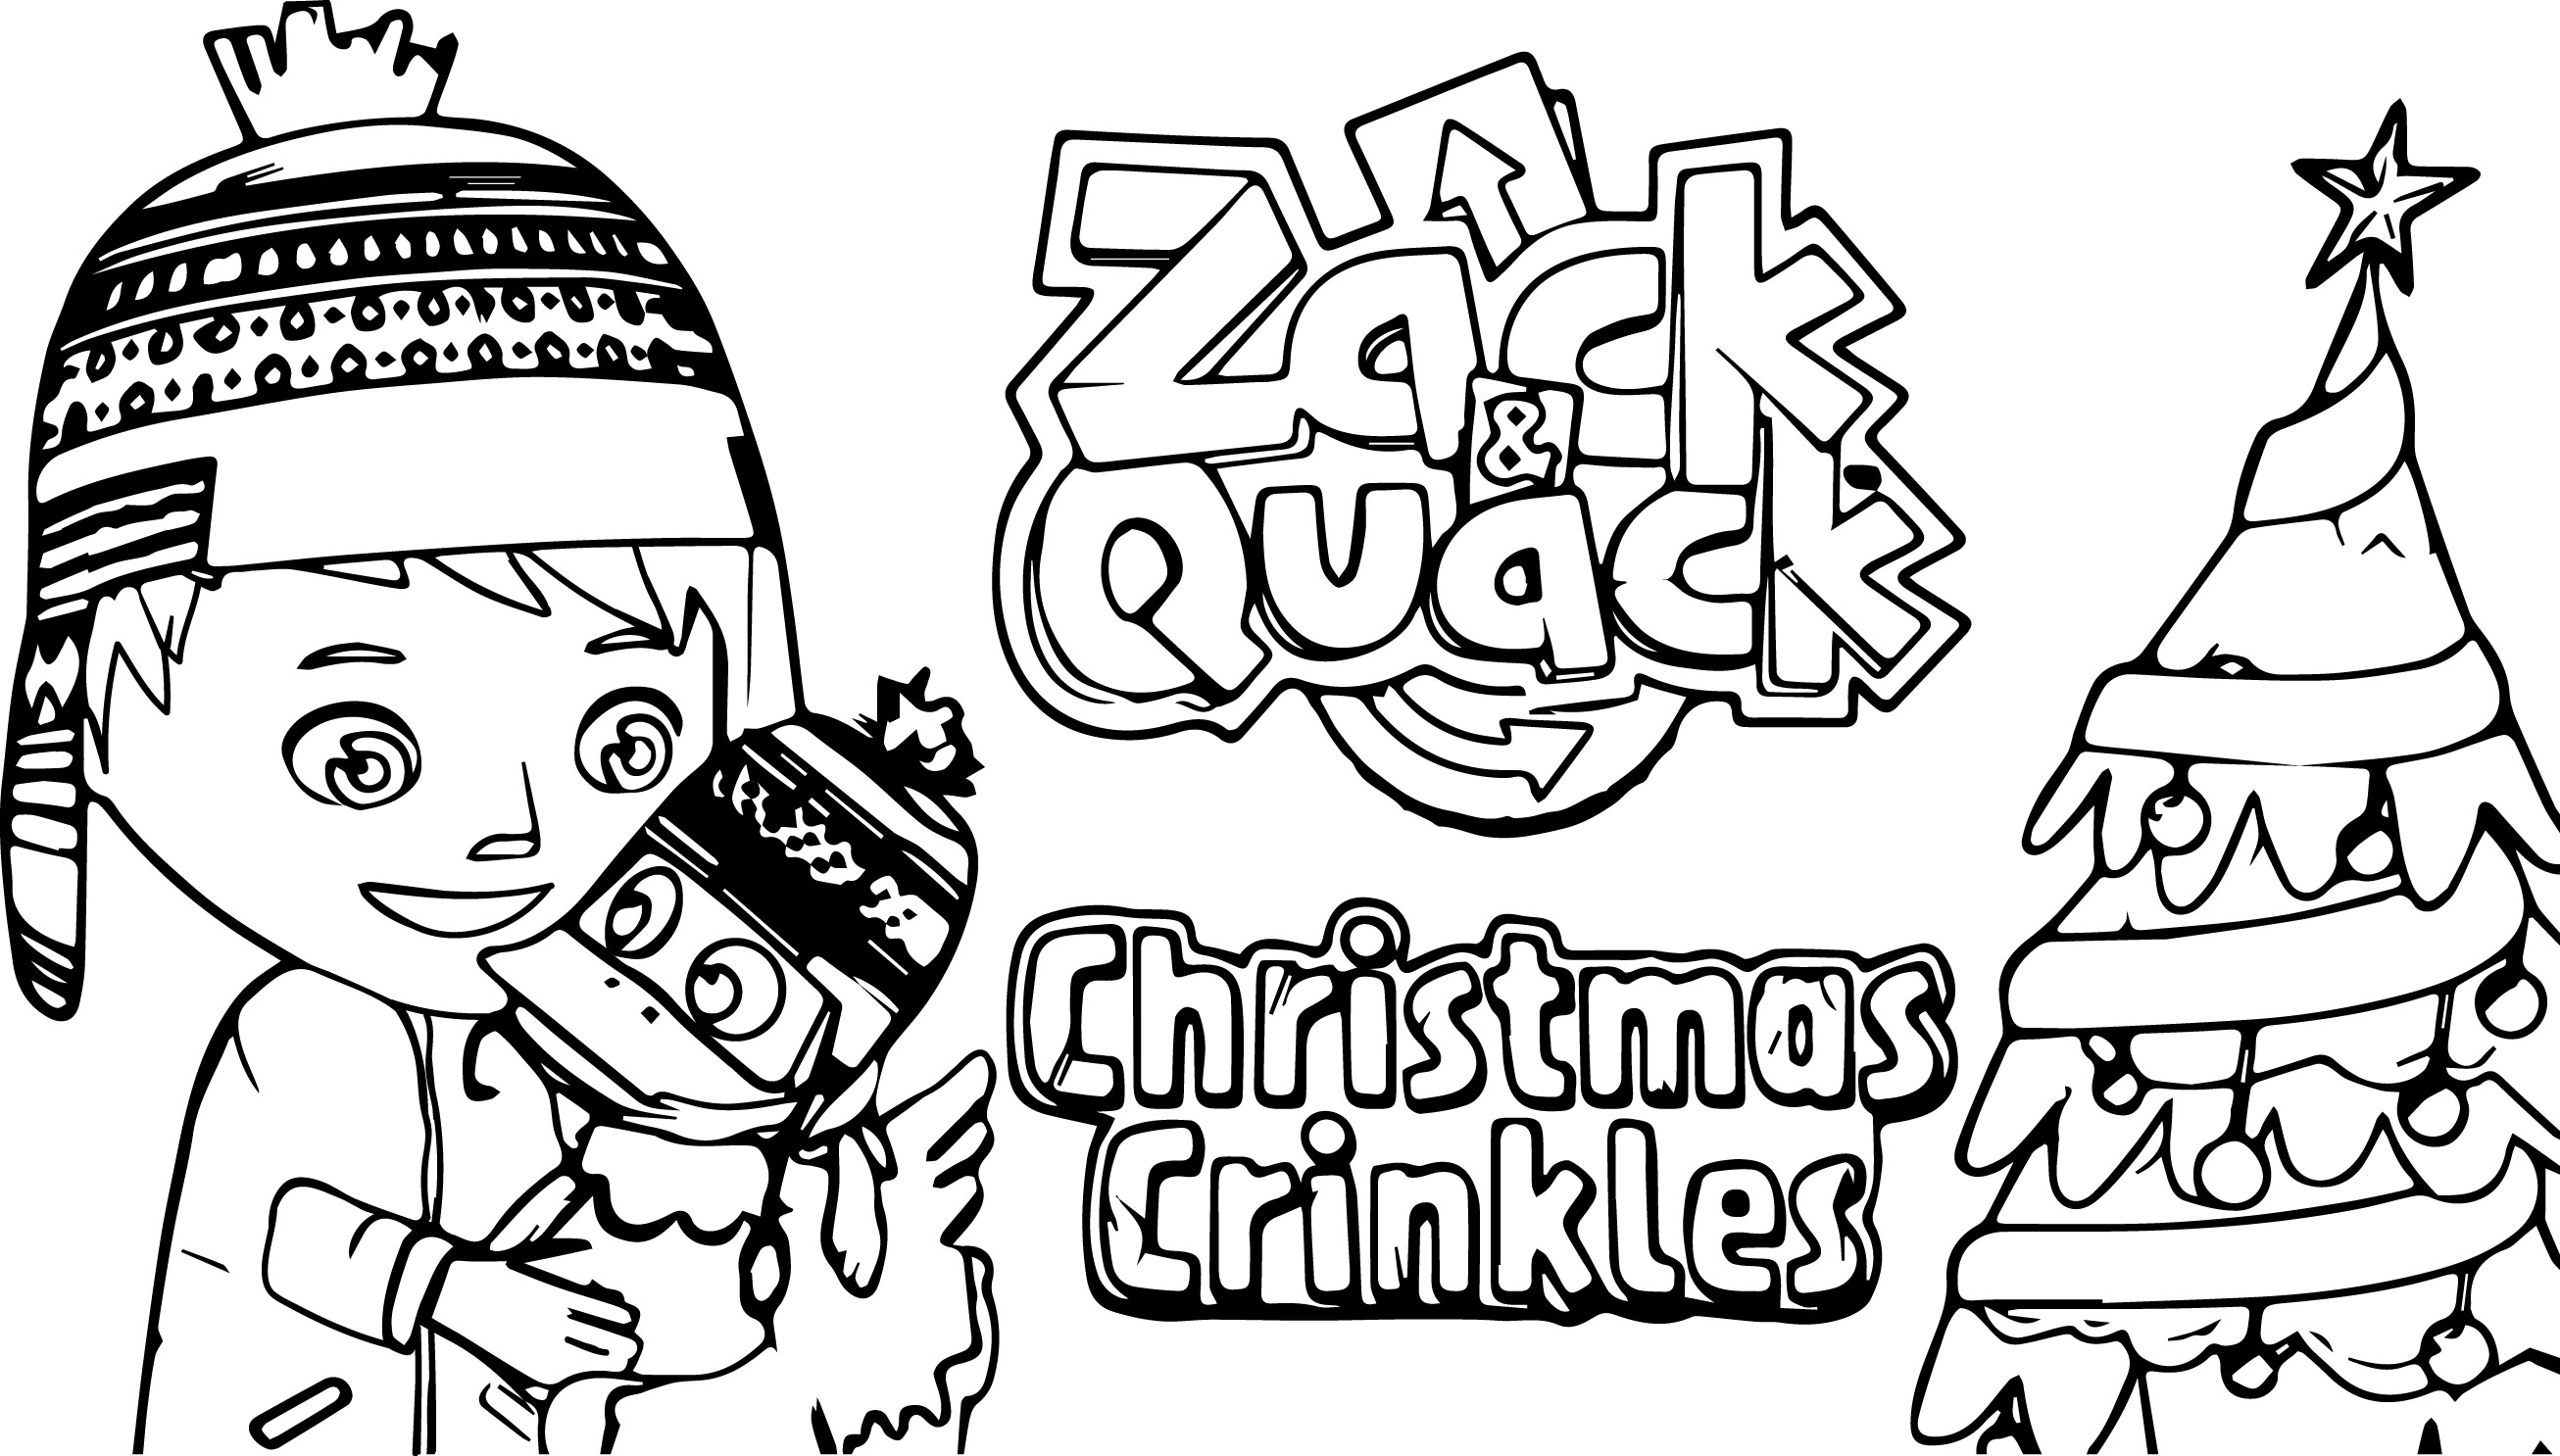 zack and quack coloring pages wecoloringpage